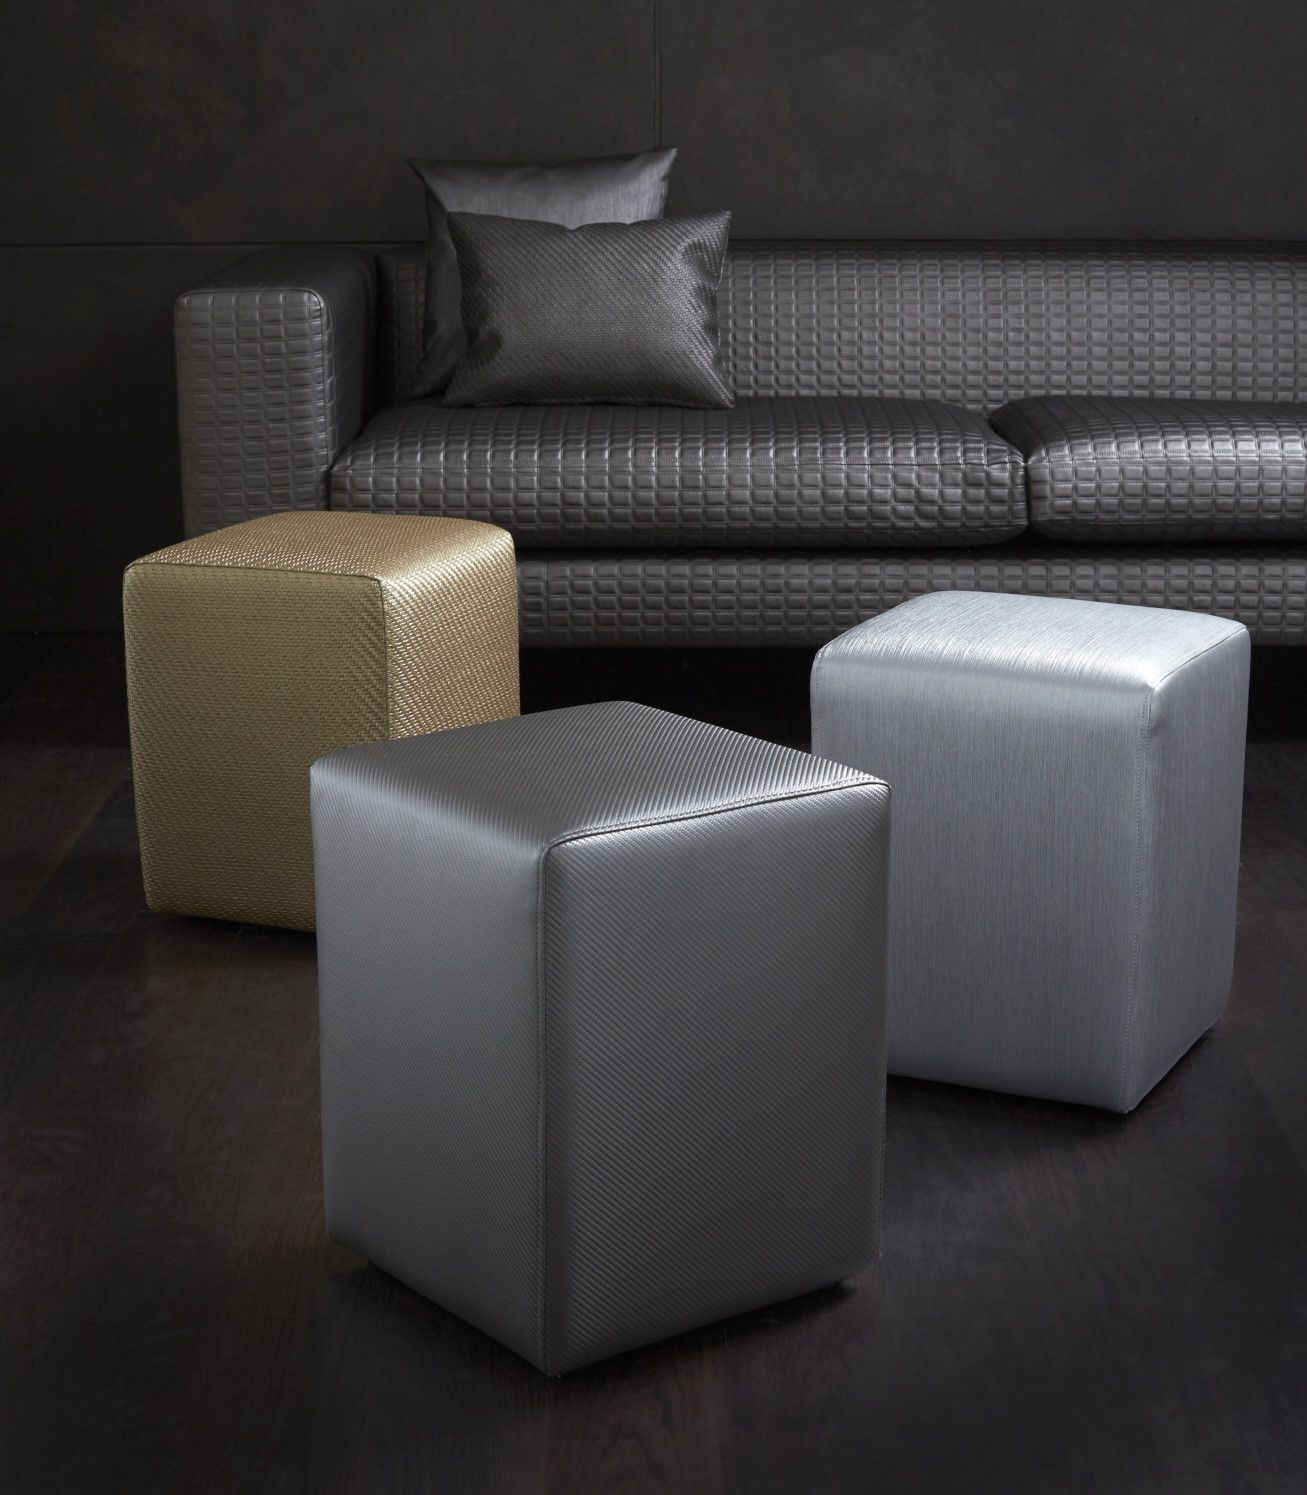 lustrell grid collection great for ottomans storage and non  - lustrell grid collection great for ottomans storage and non storage greatfor commercial use